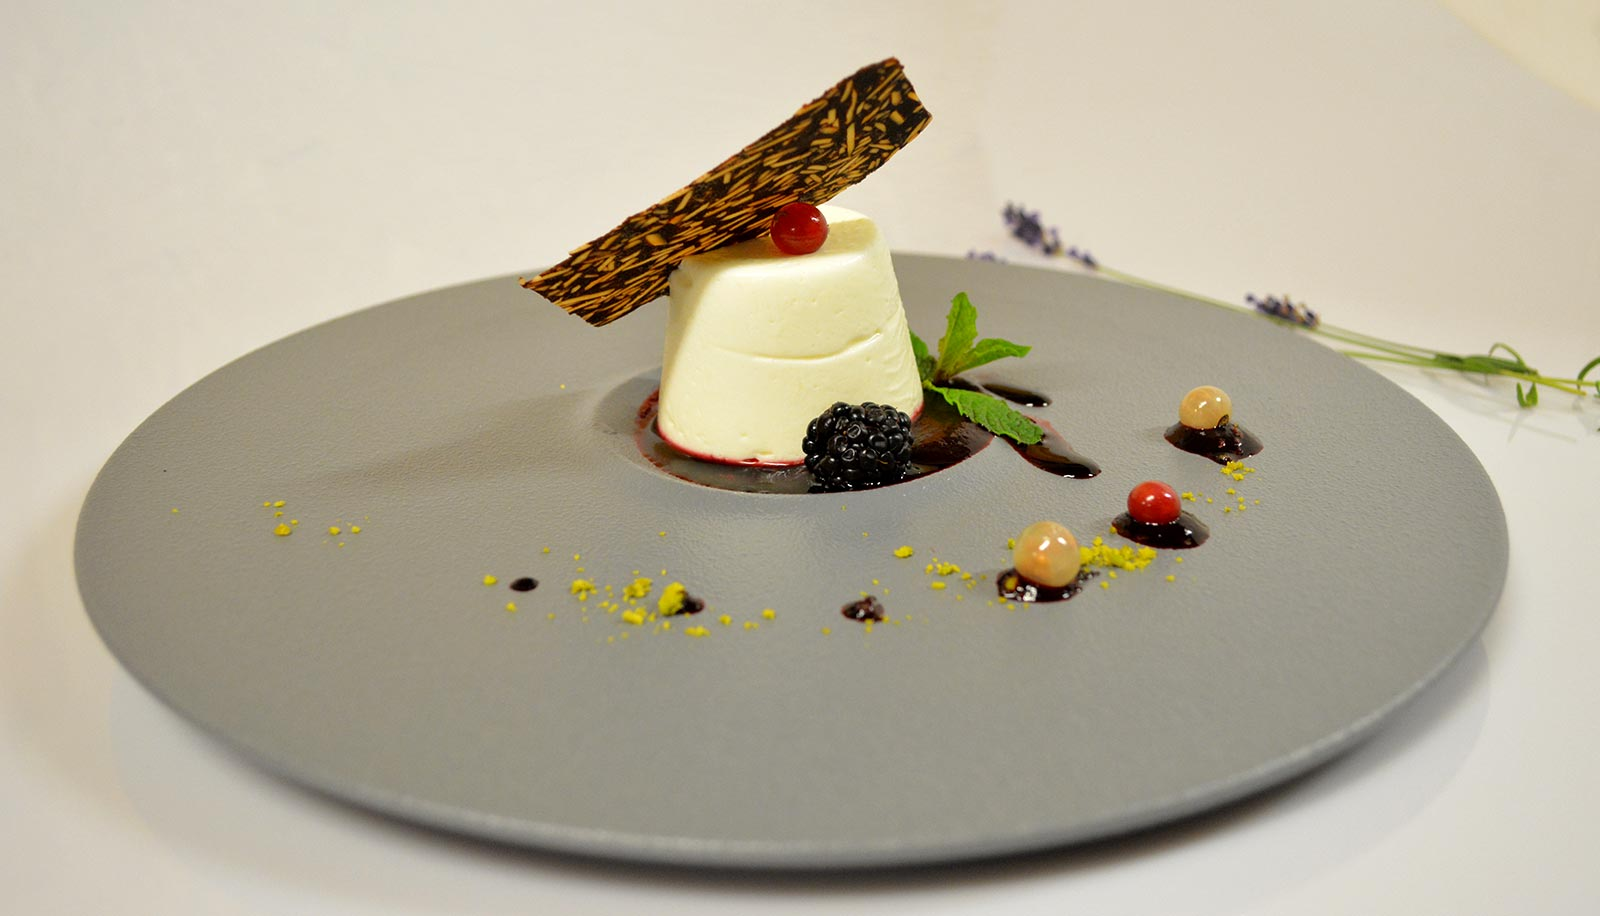 Panna cotta on a fruit sauce with decoration and small fruits